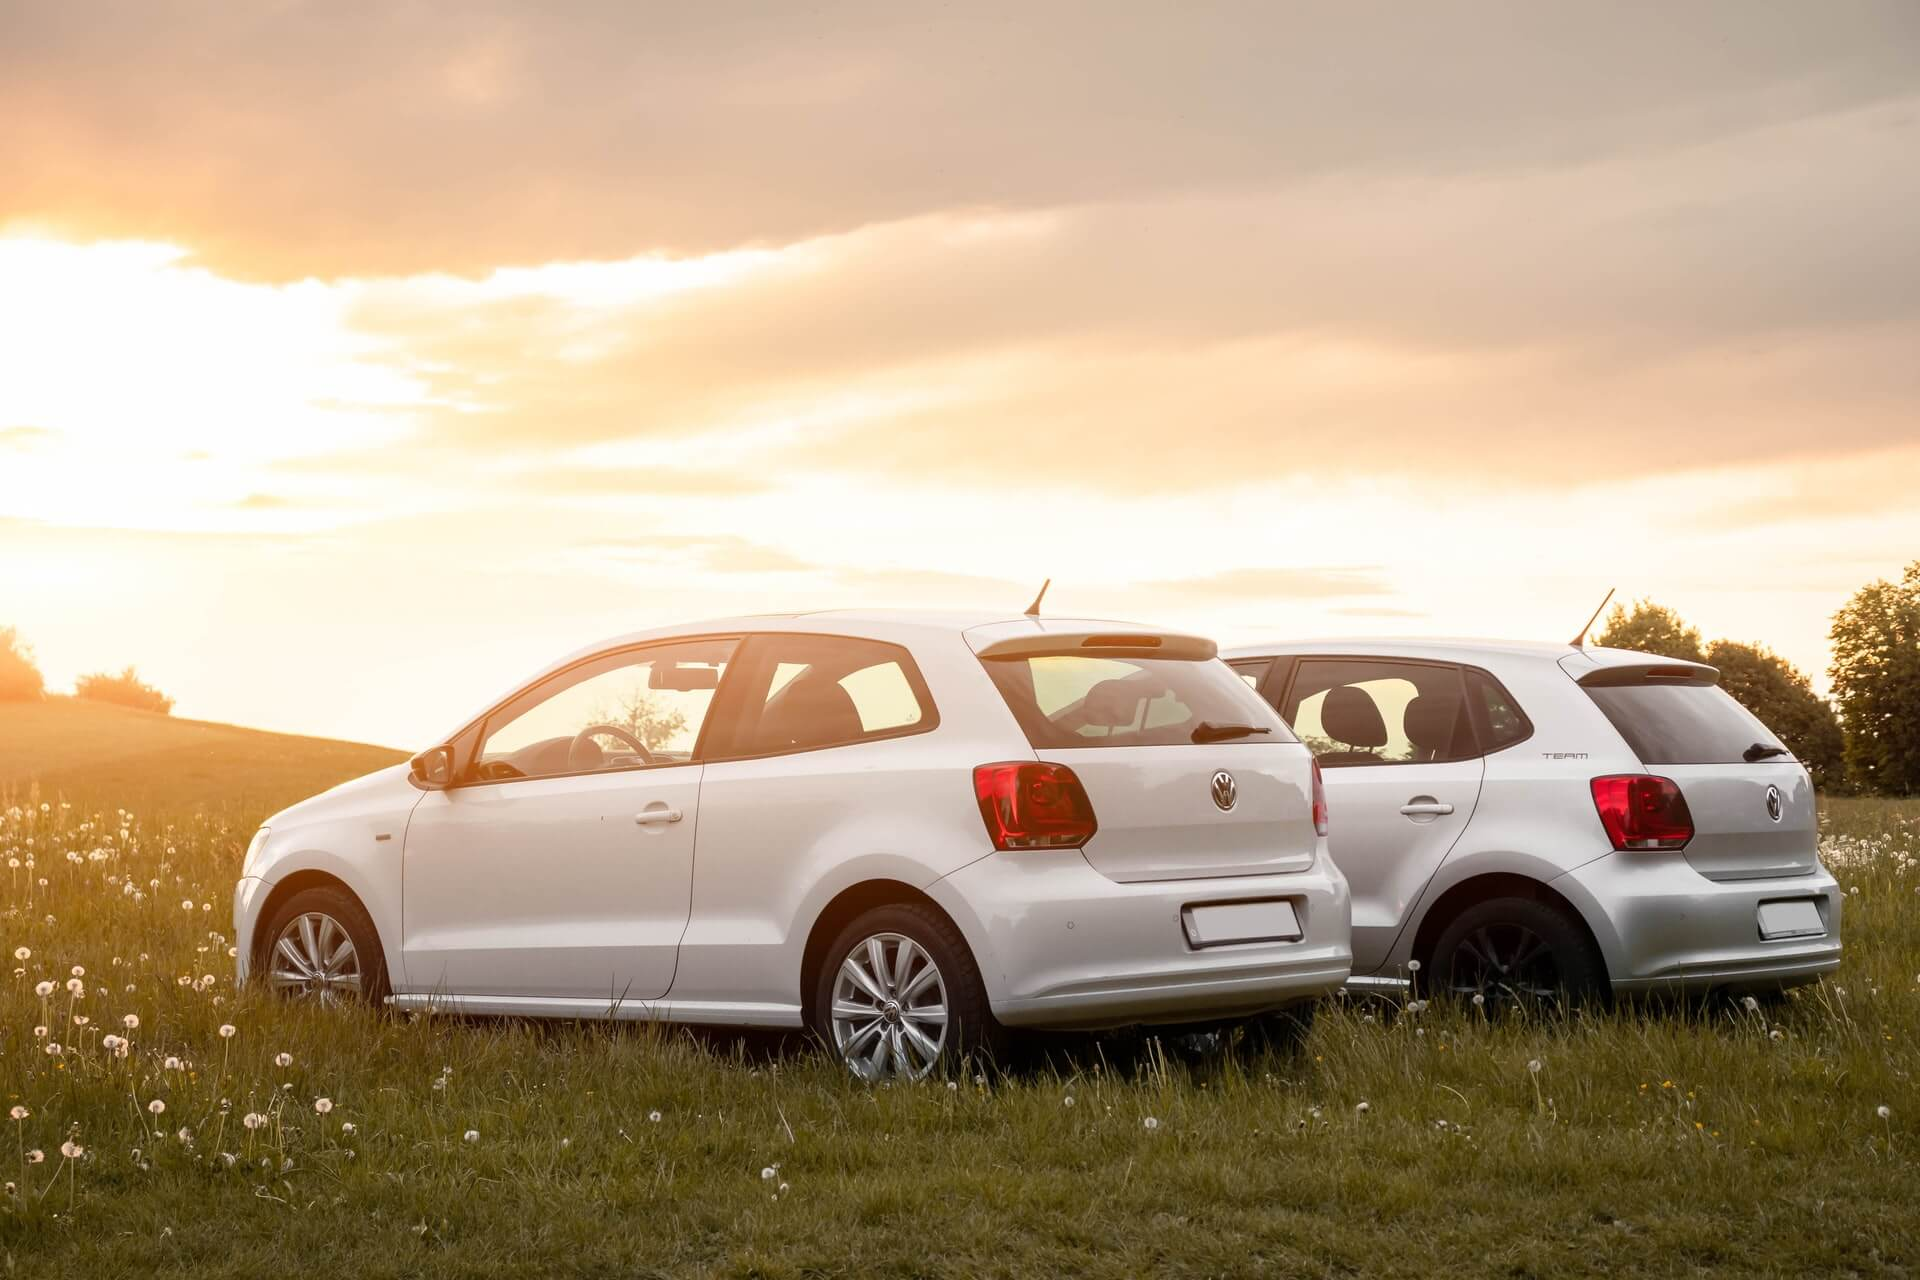 Identical cars with different wheels parked in a field